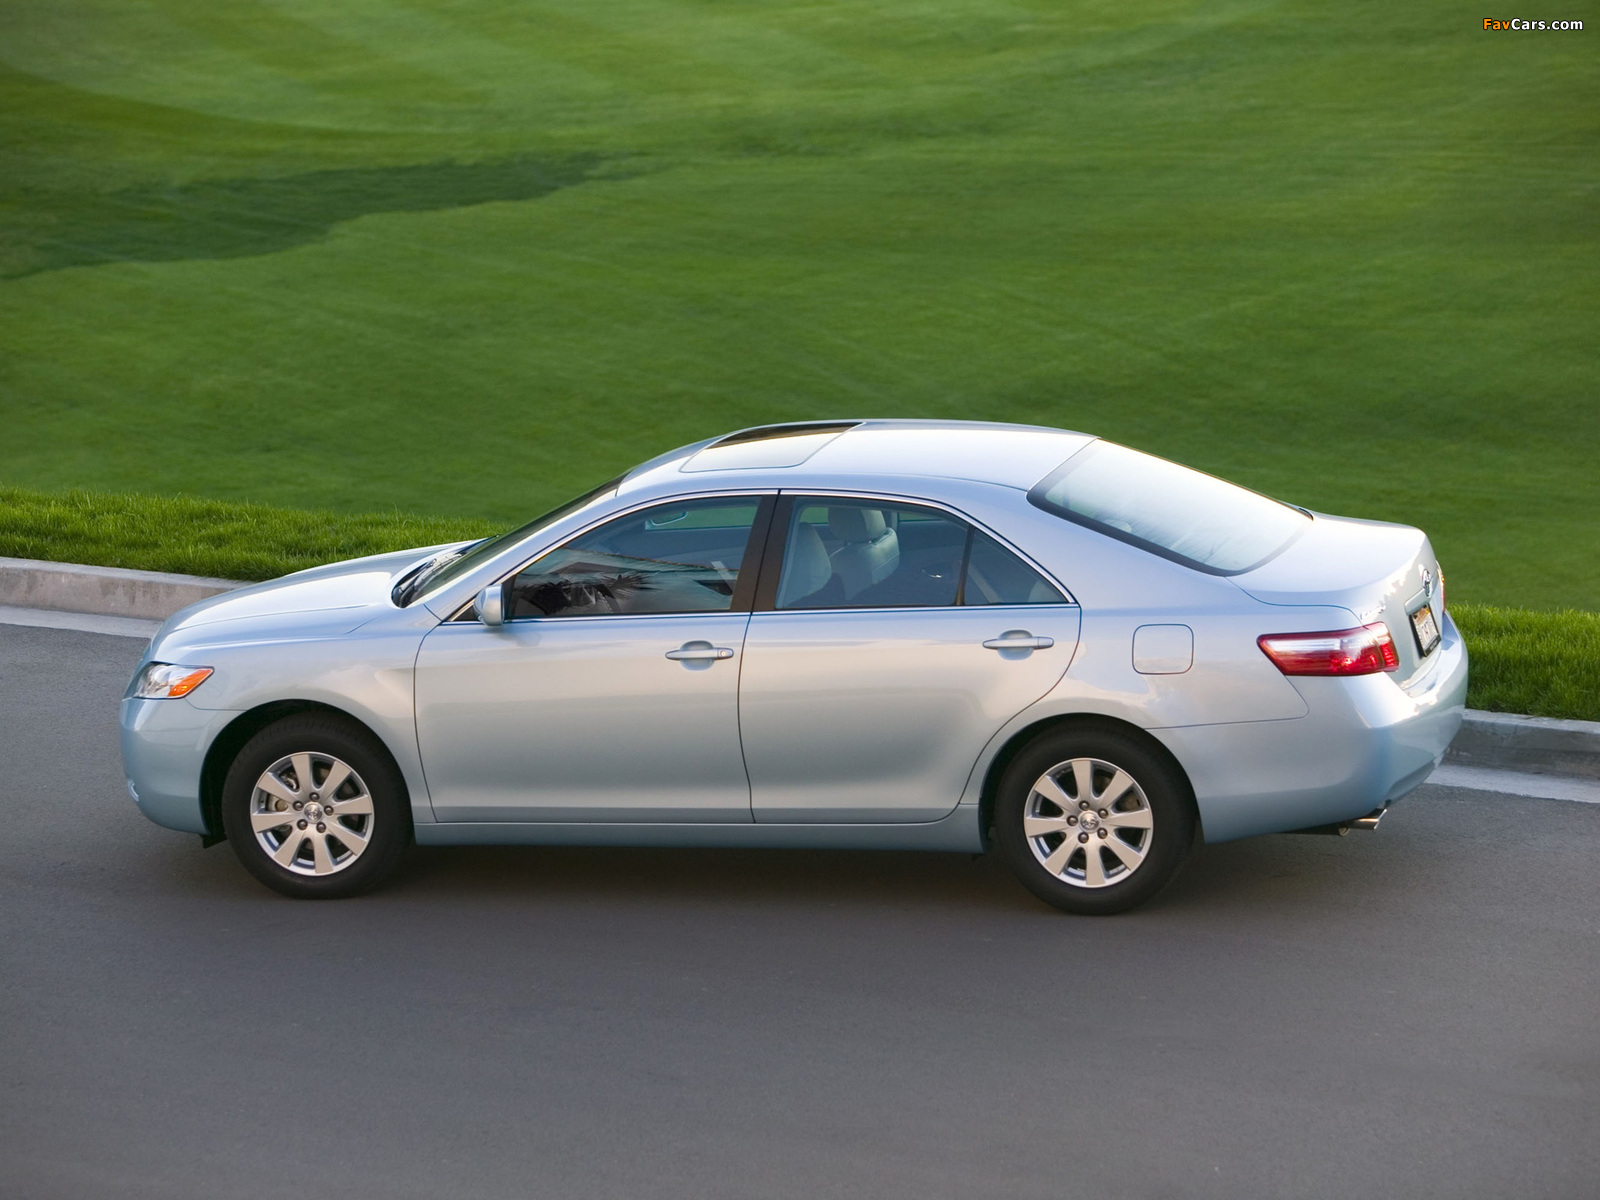 Images Of Toyota Camry Xle 2006 09 1600x1200